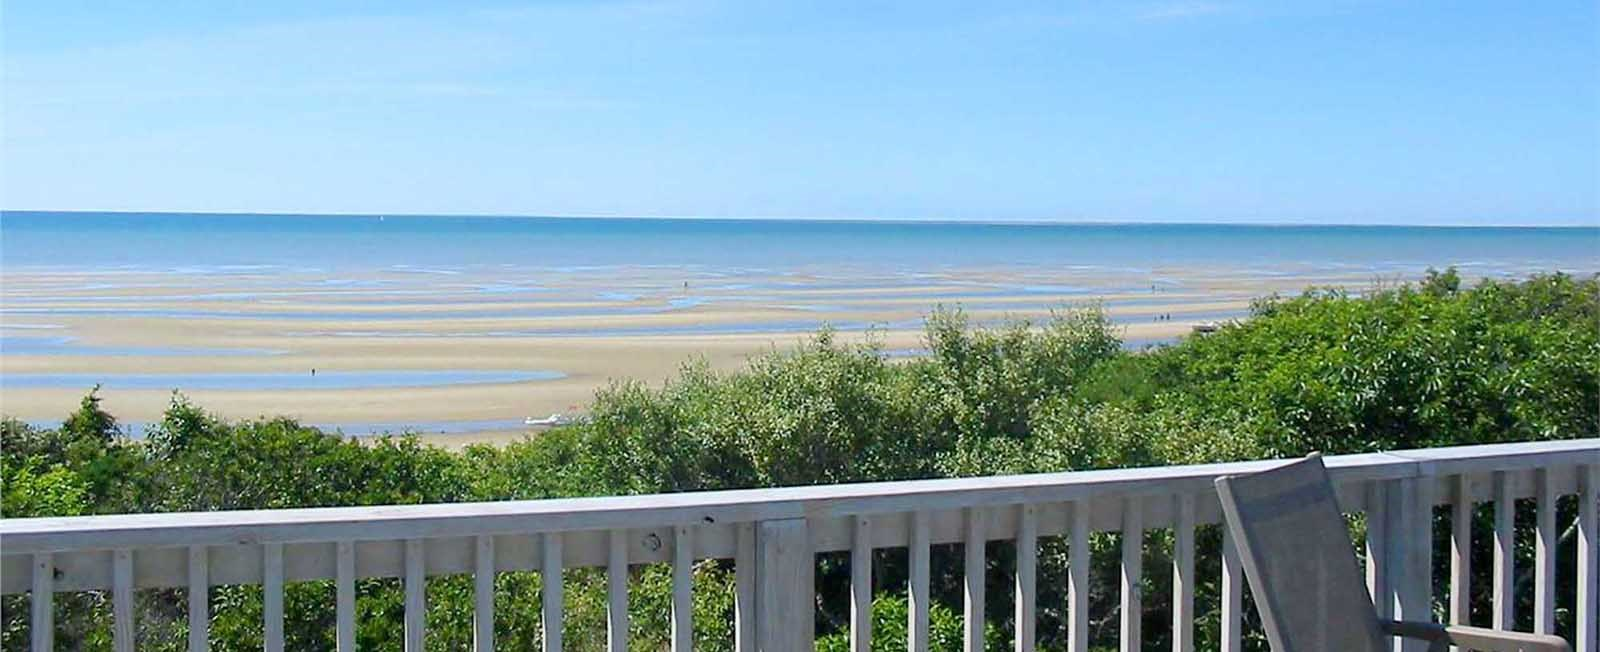 Book your summer rental! These Outer Cape homes are still available for the 2018 summer season!